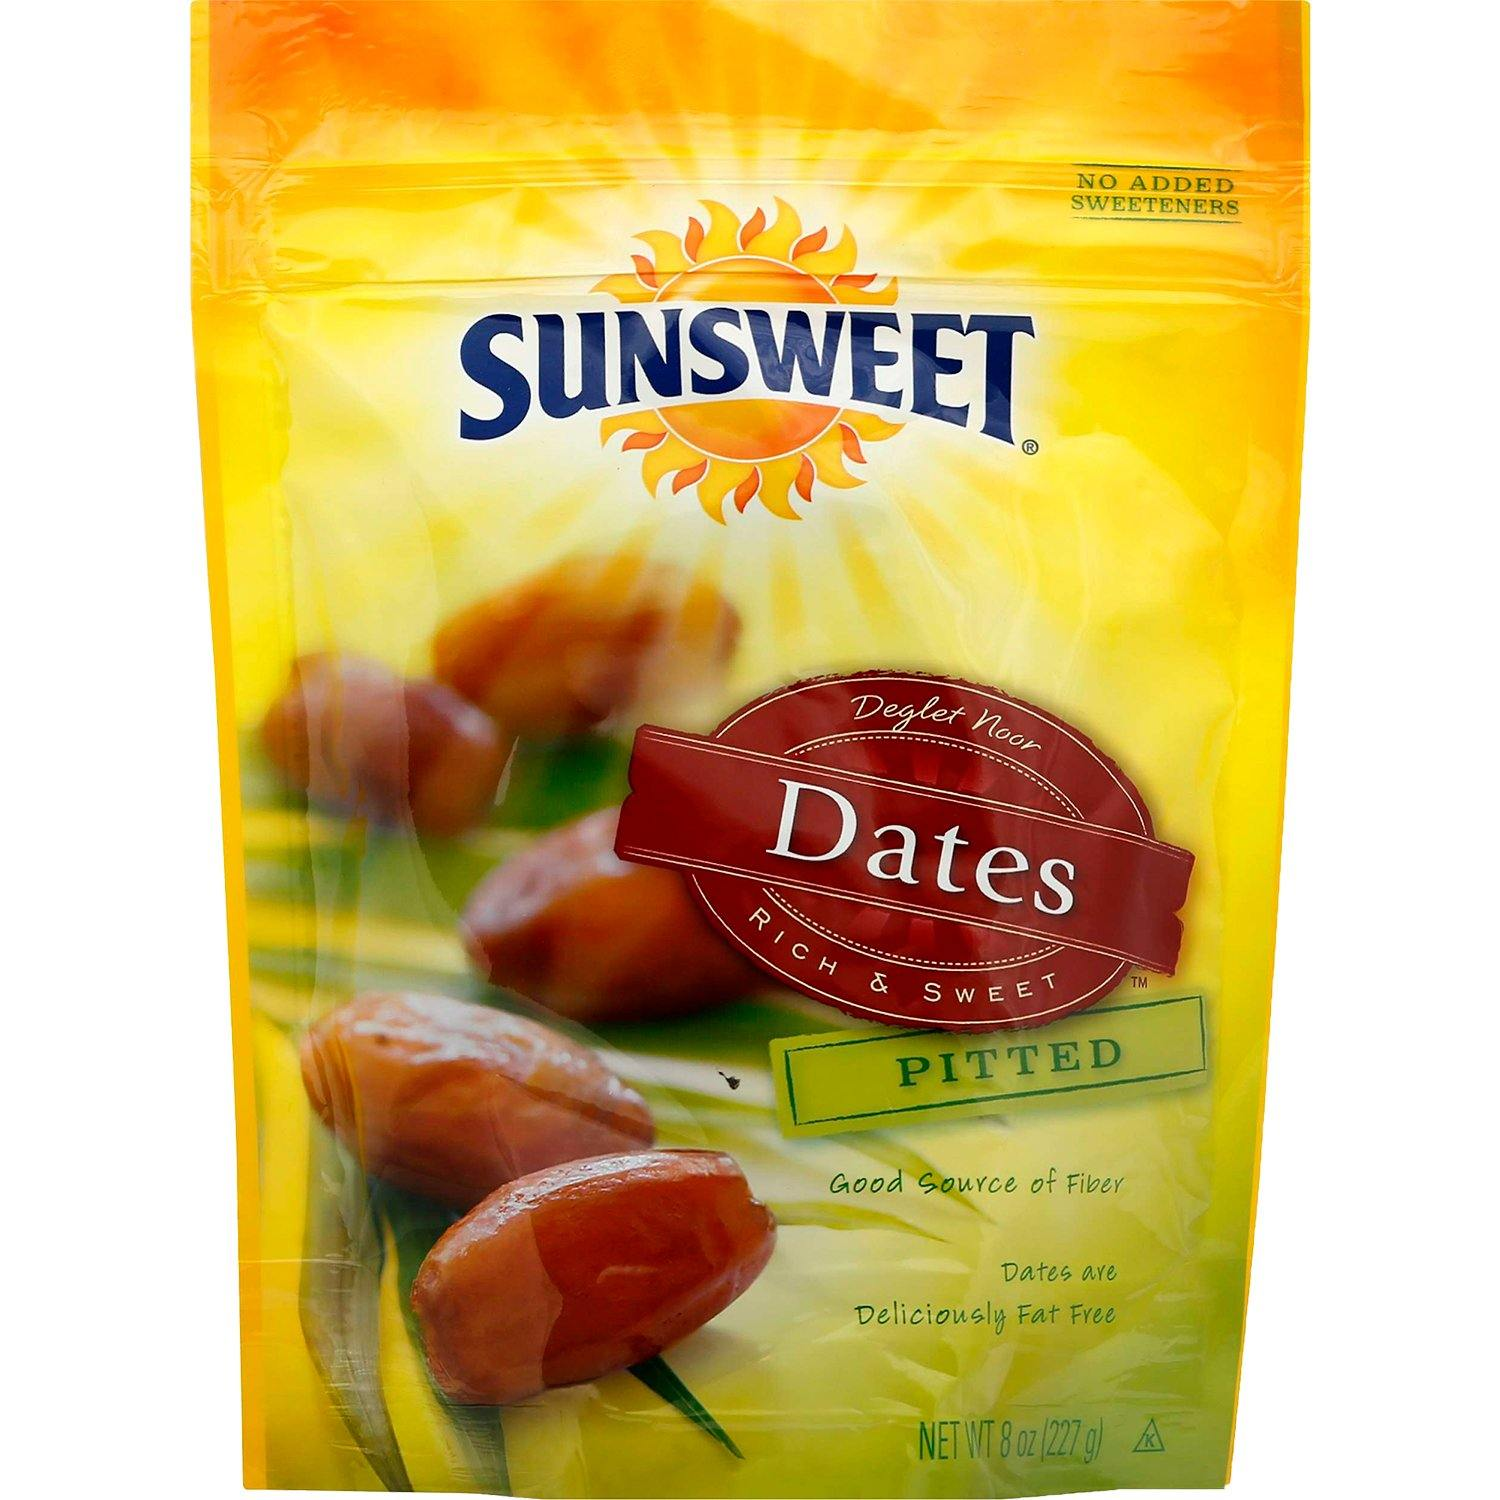 Sunsweet Dried Dates Sunsweet Pitted 8 Ounce Pouch